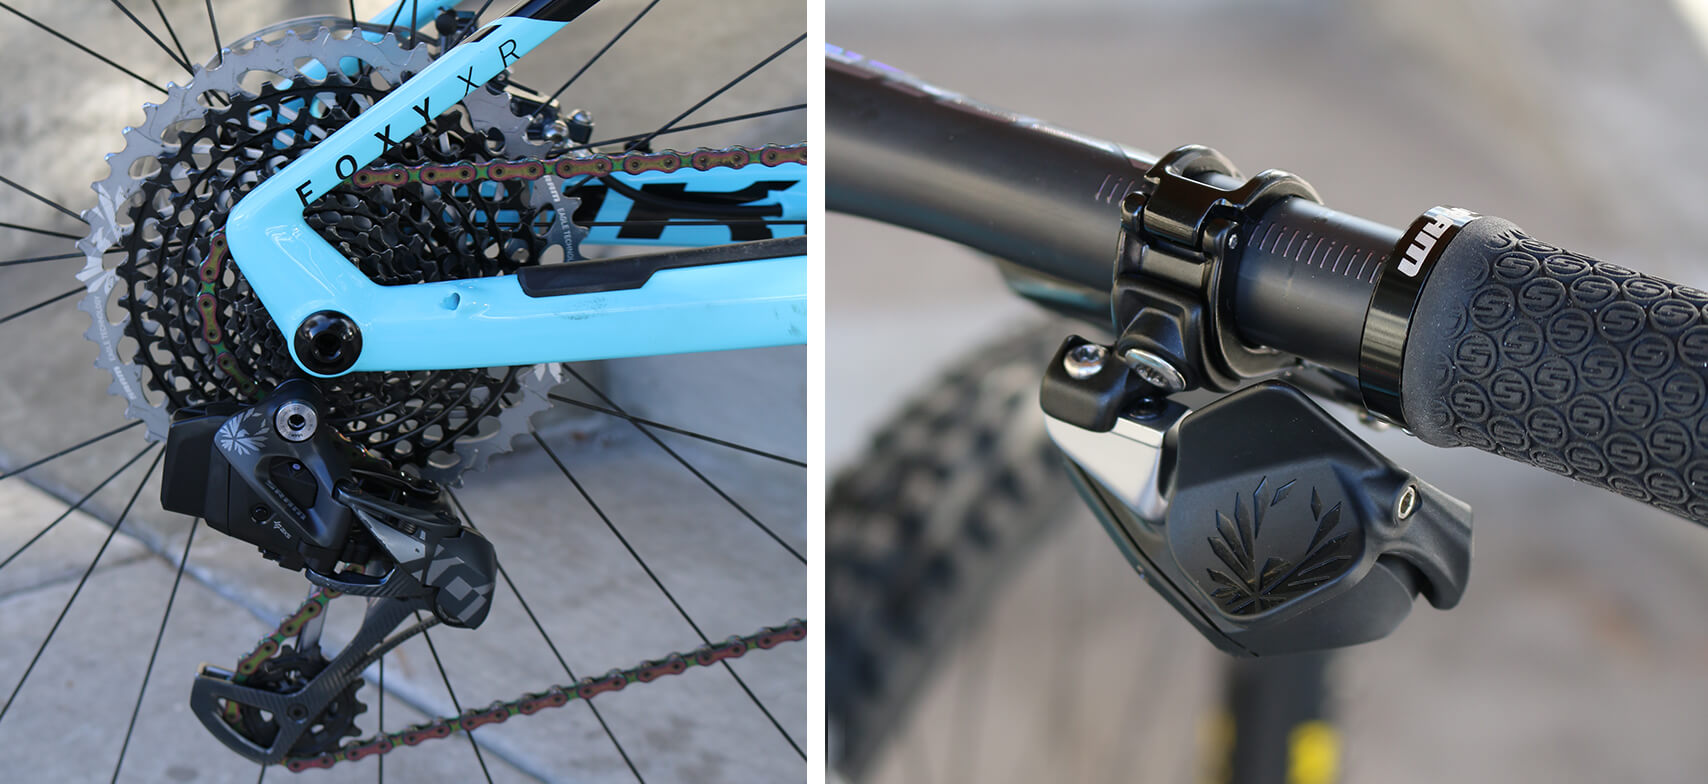 SRAM Eagle X01 AXS Wireless Controller and Rear Derailleur - Contender Bicycles